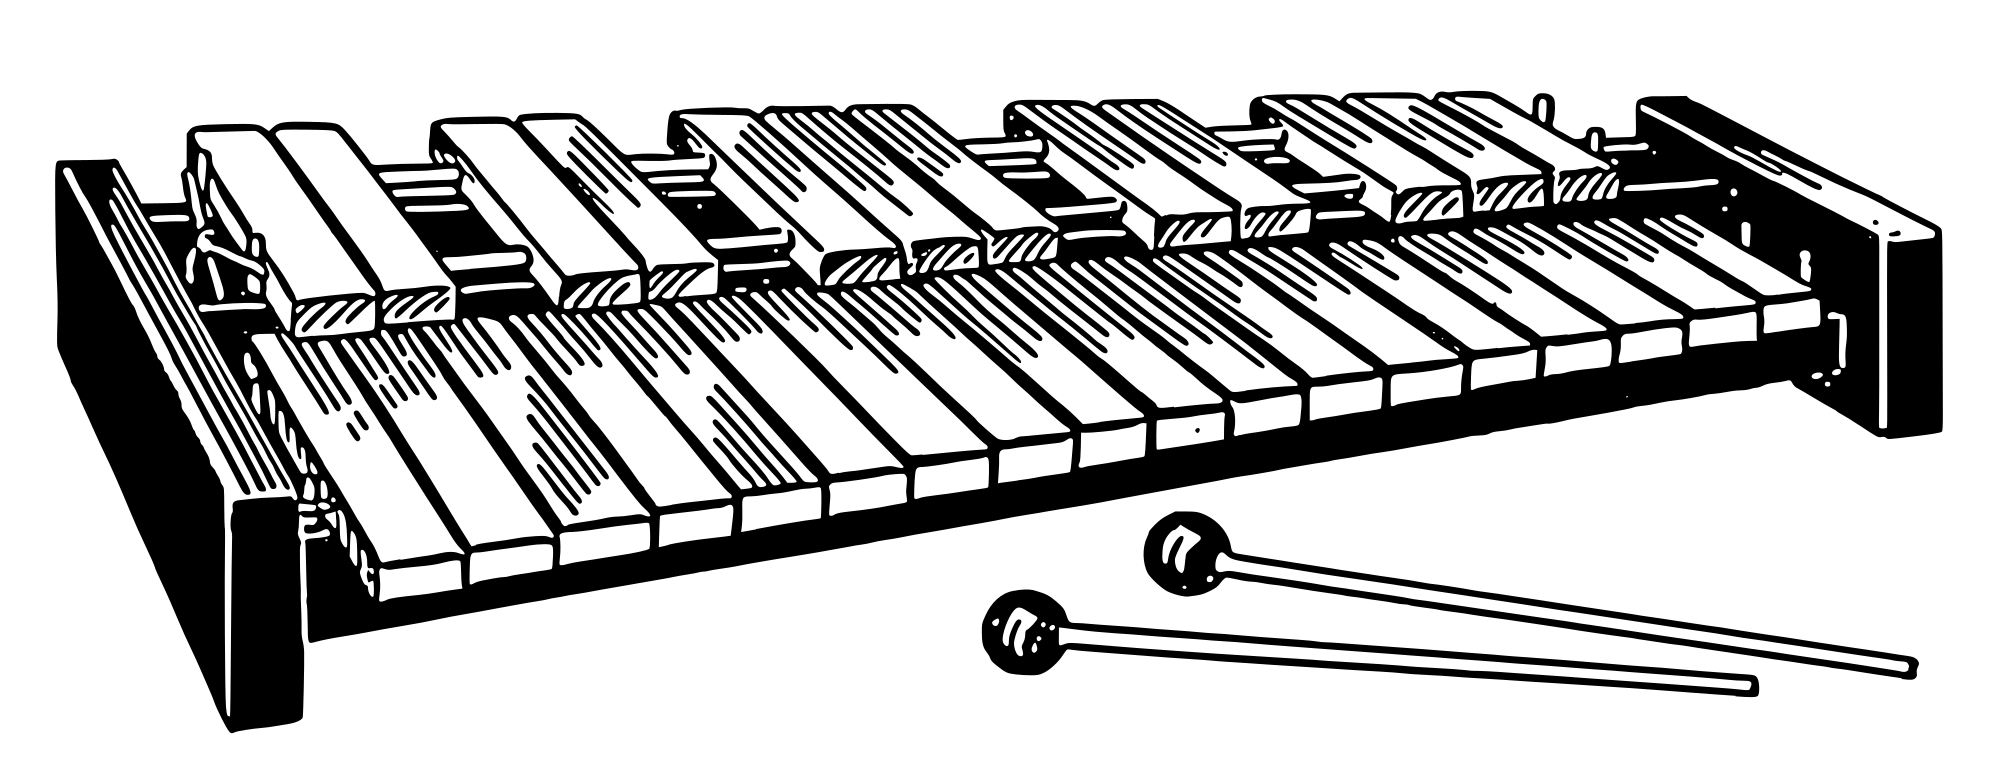 Xylophone black and white clipart freeuse stock Xylophone Black and White Clipart transparent PNG - StickPNG freeuse stock